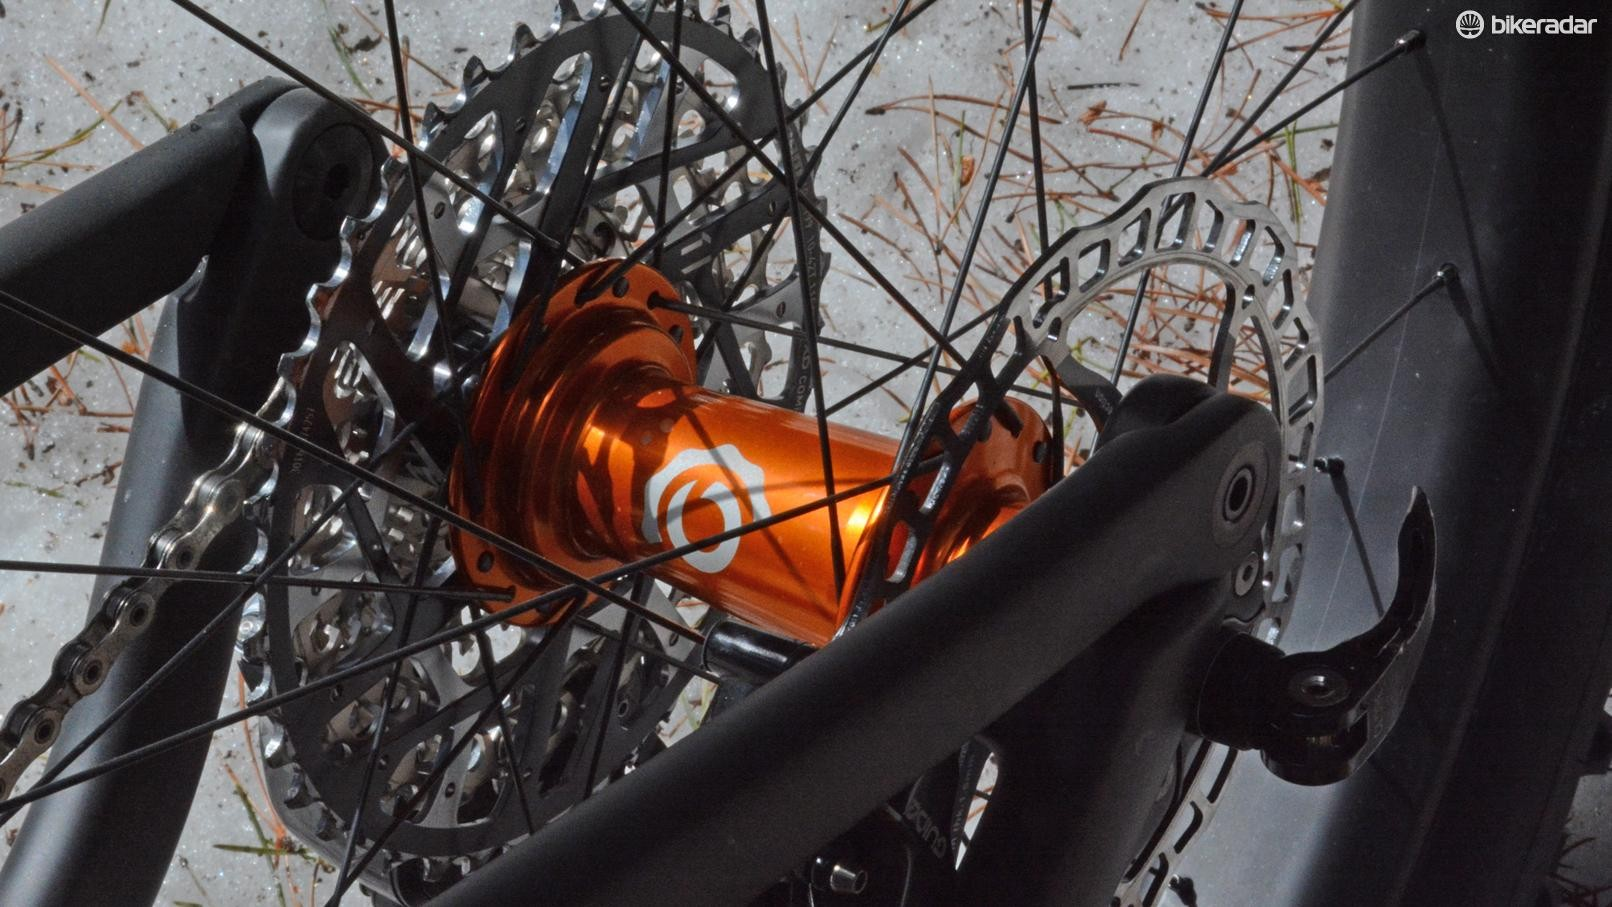 The wheelset was high end: Industry Nine hubs laced to LaMere 65mm wide carbon rims